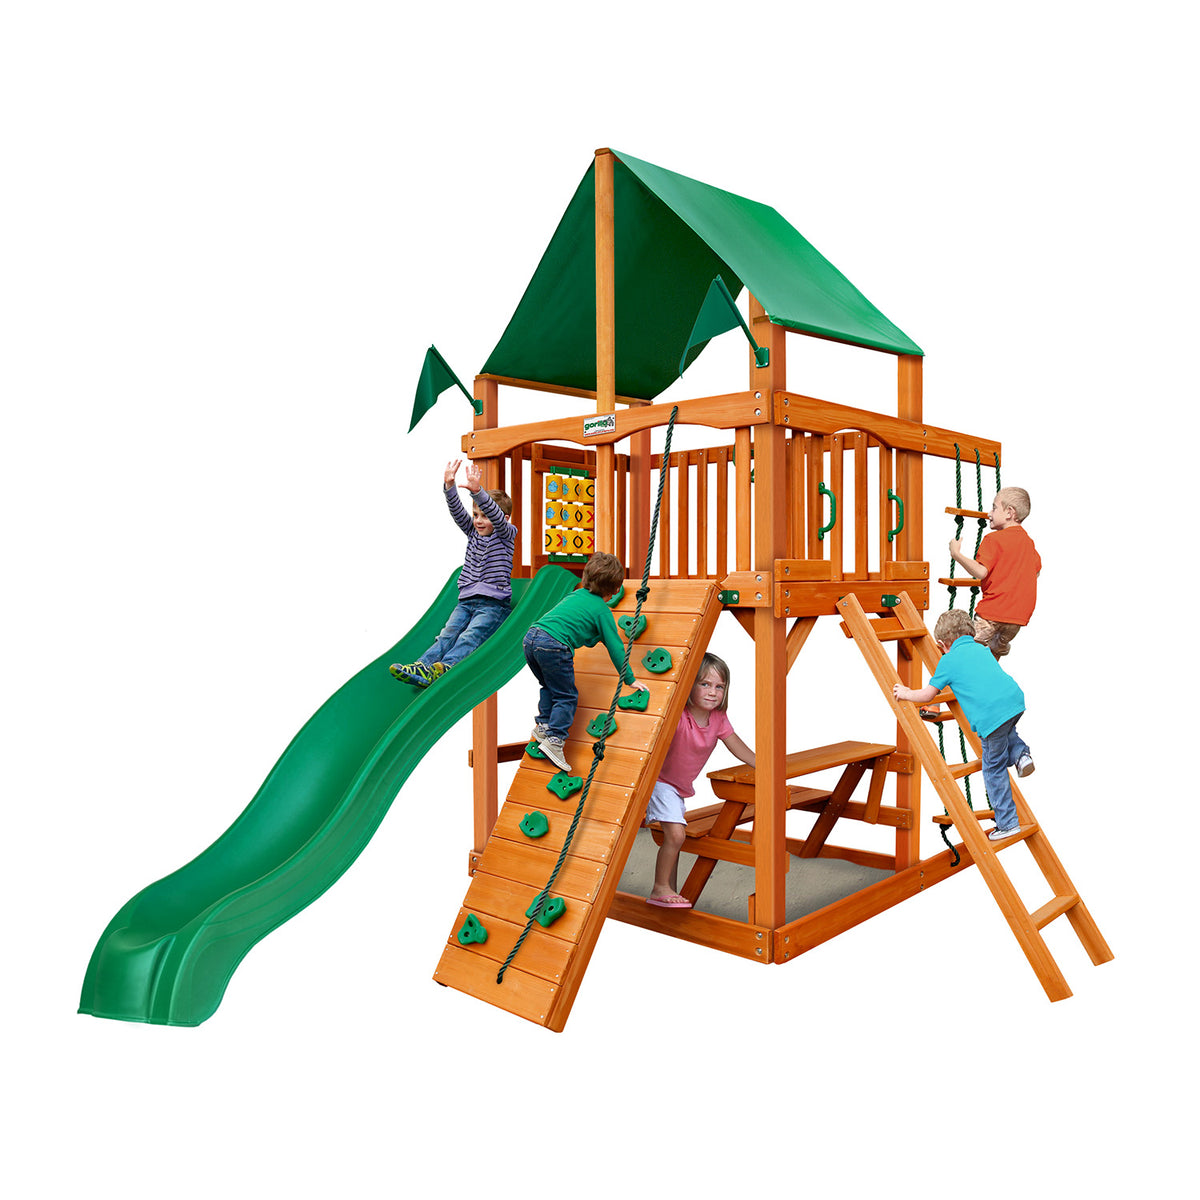 Gorilla-Playsets-Chateau-Tower-Deluxe-Wooden-Swingset-White-Back